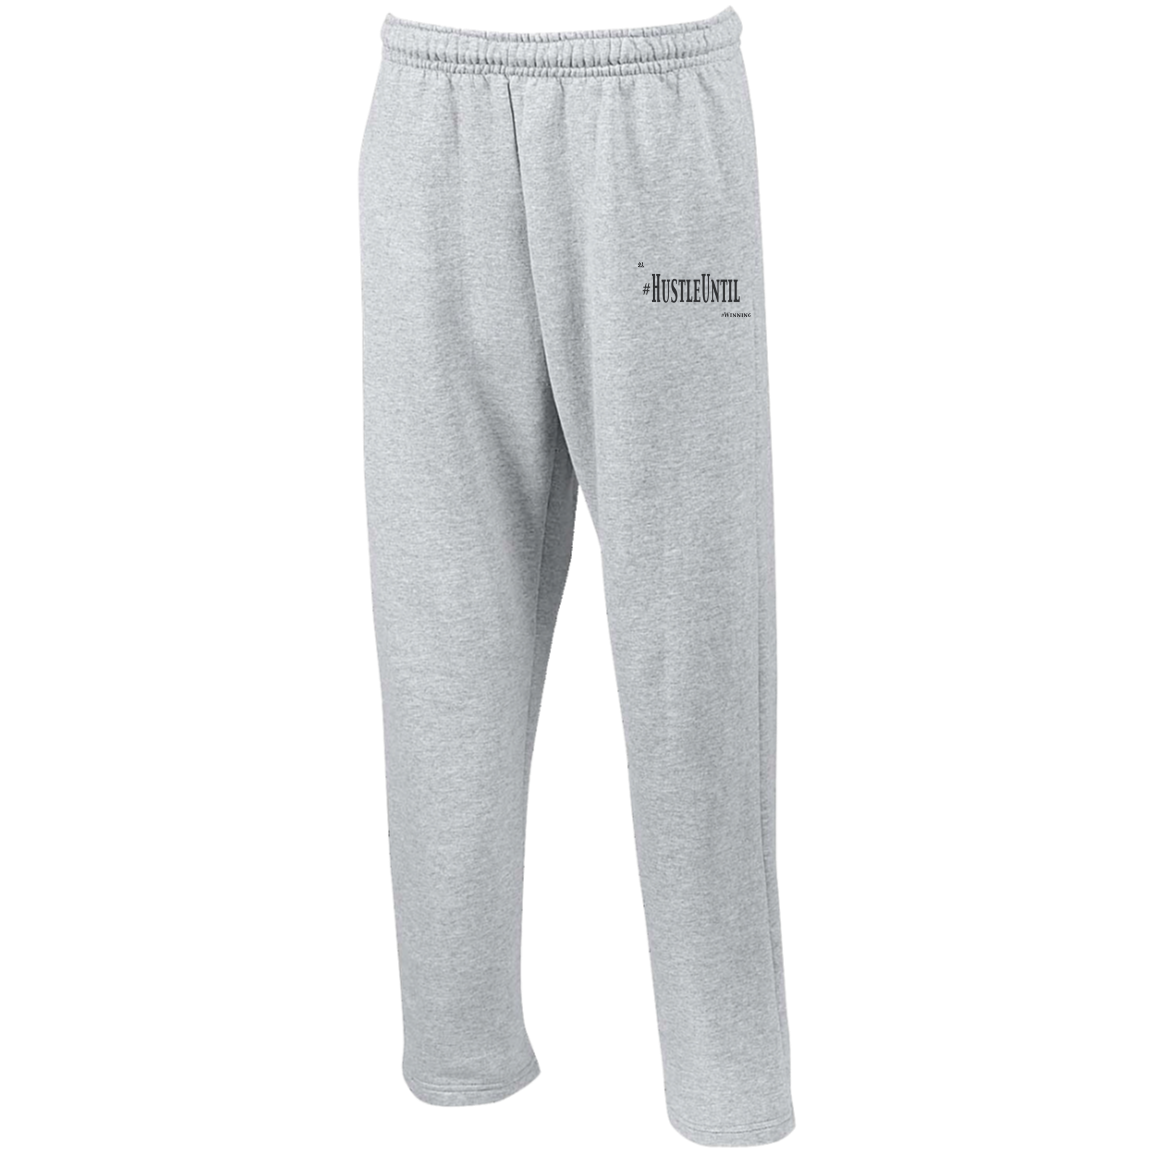 Hustle Until - Gildan Open Bottom Sweatpants with Pockets